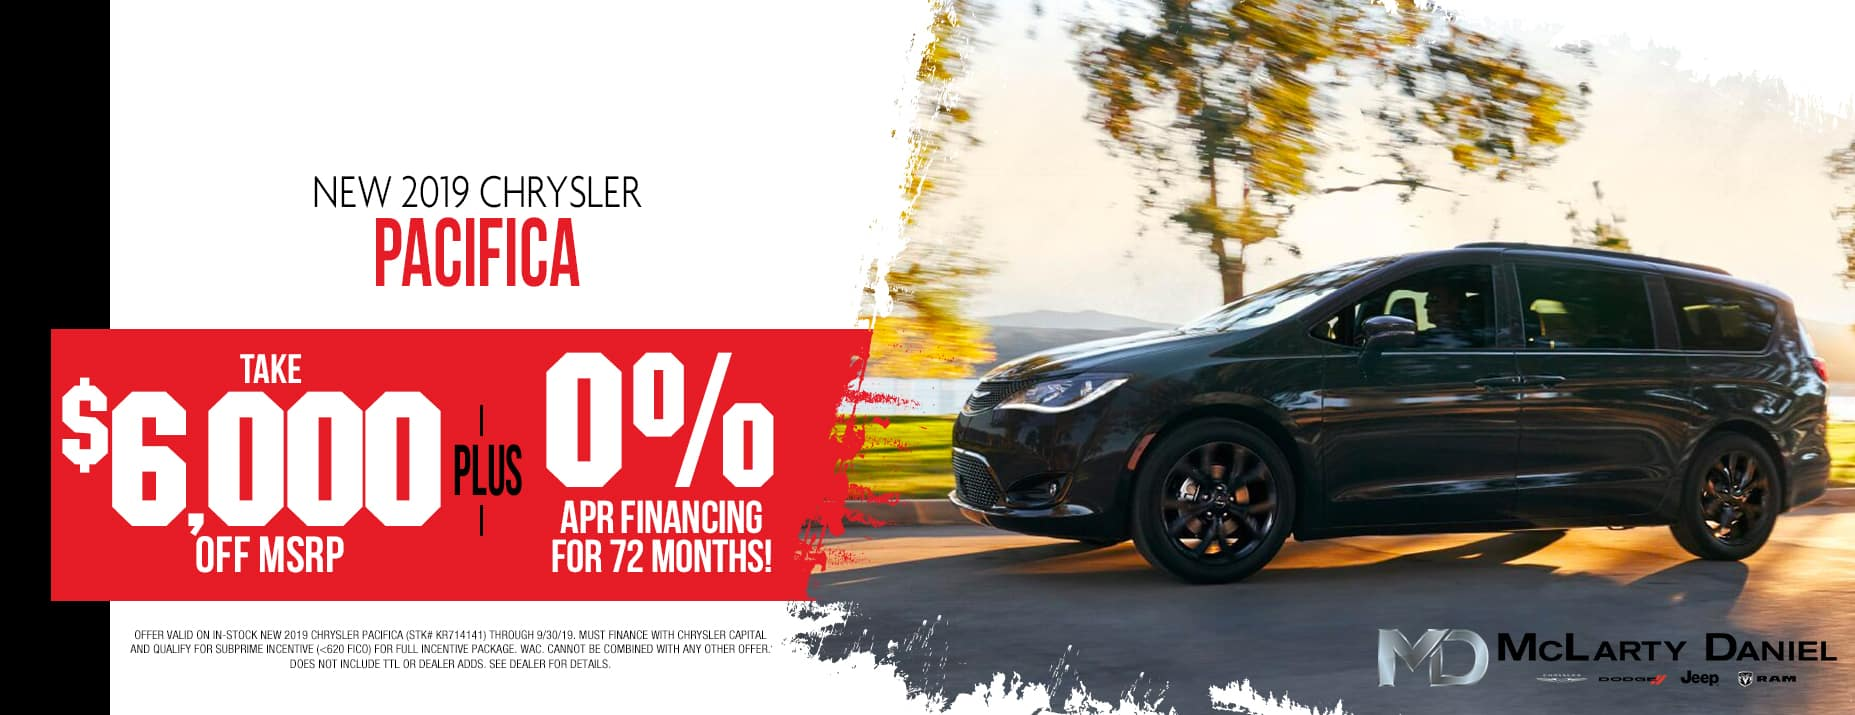 2019 Chrysler Pacifica $6,000 off msrp or 0% Apr